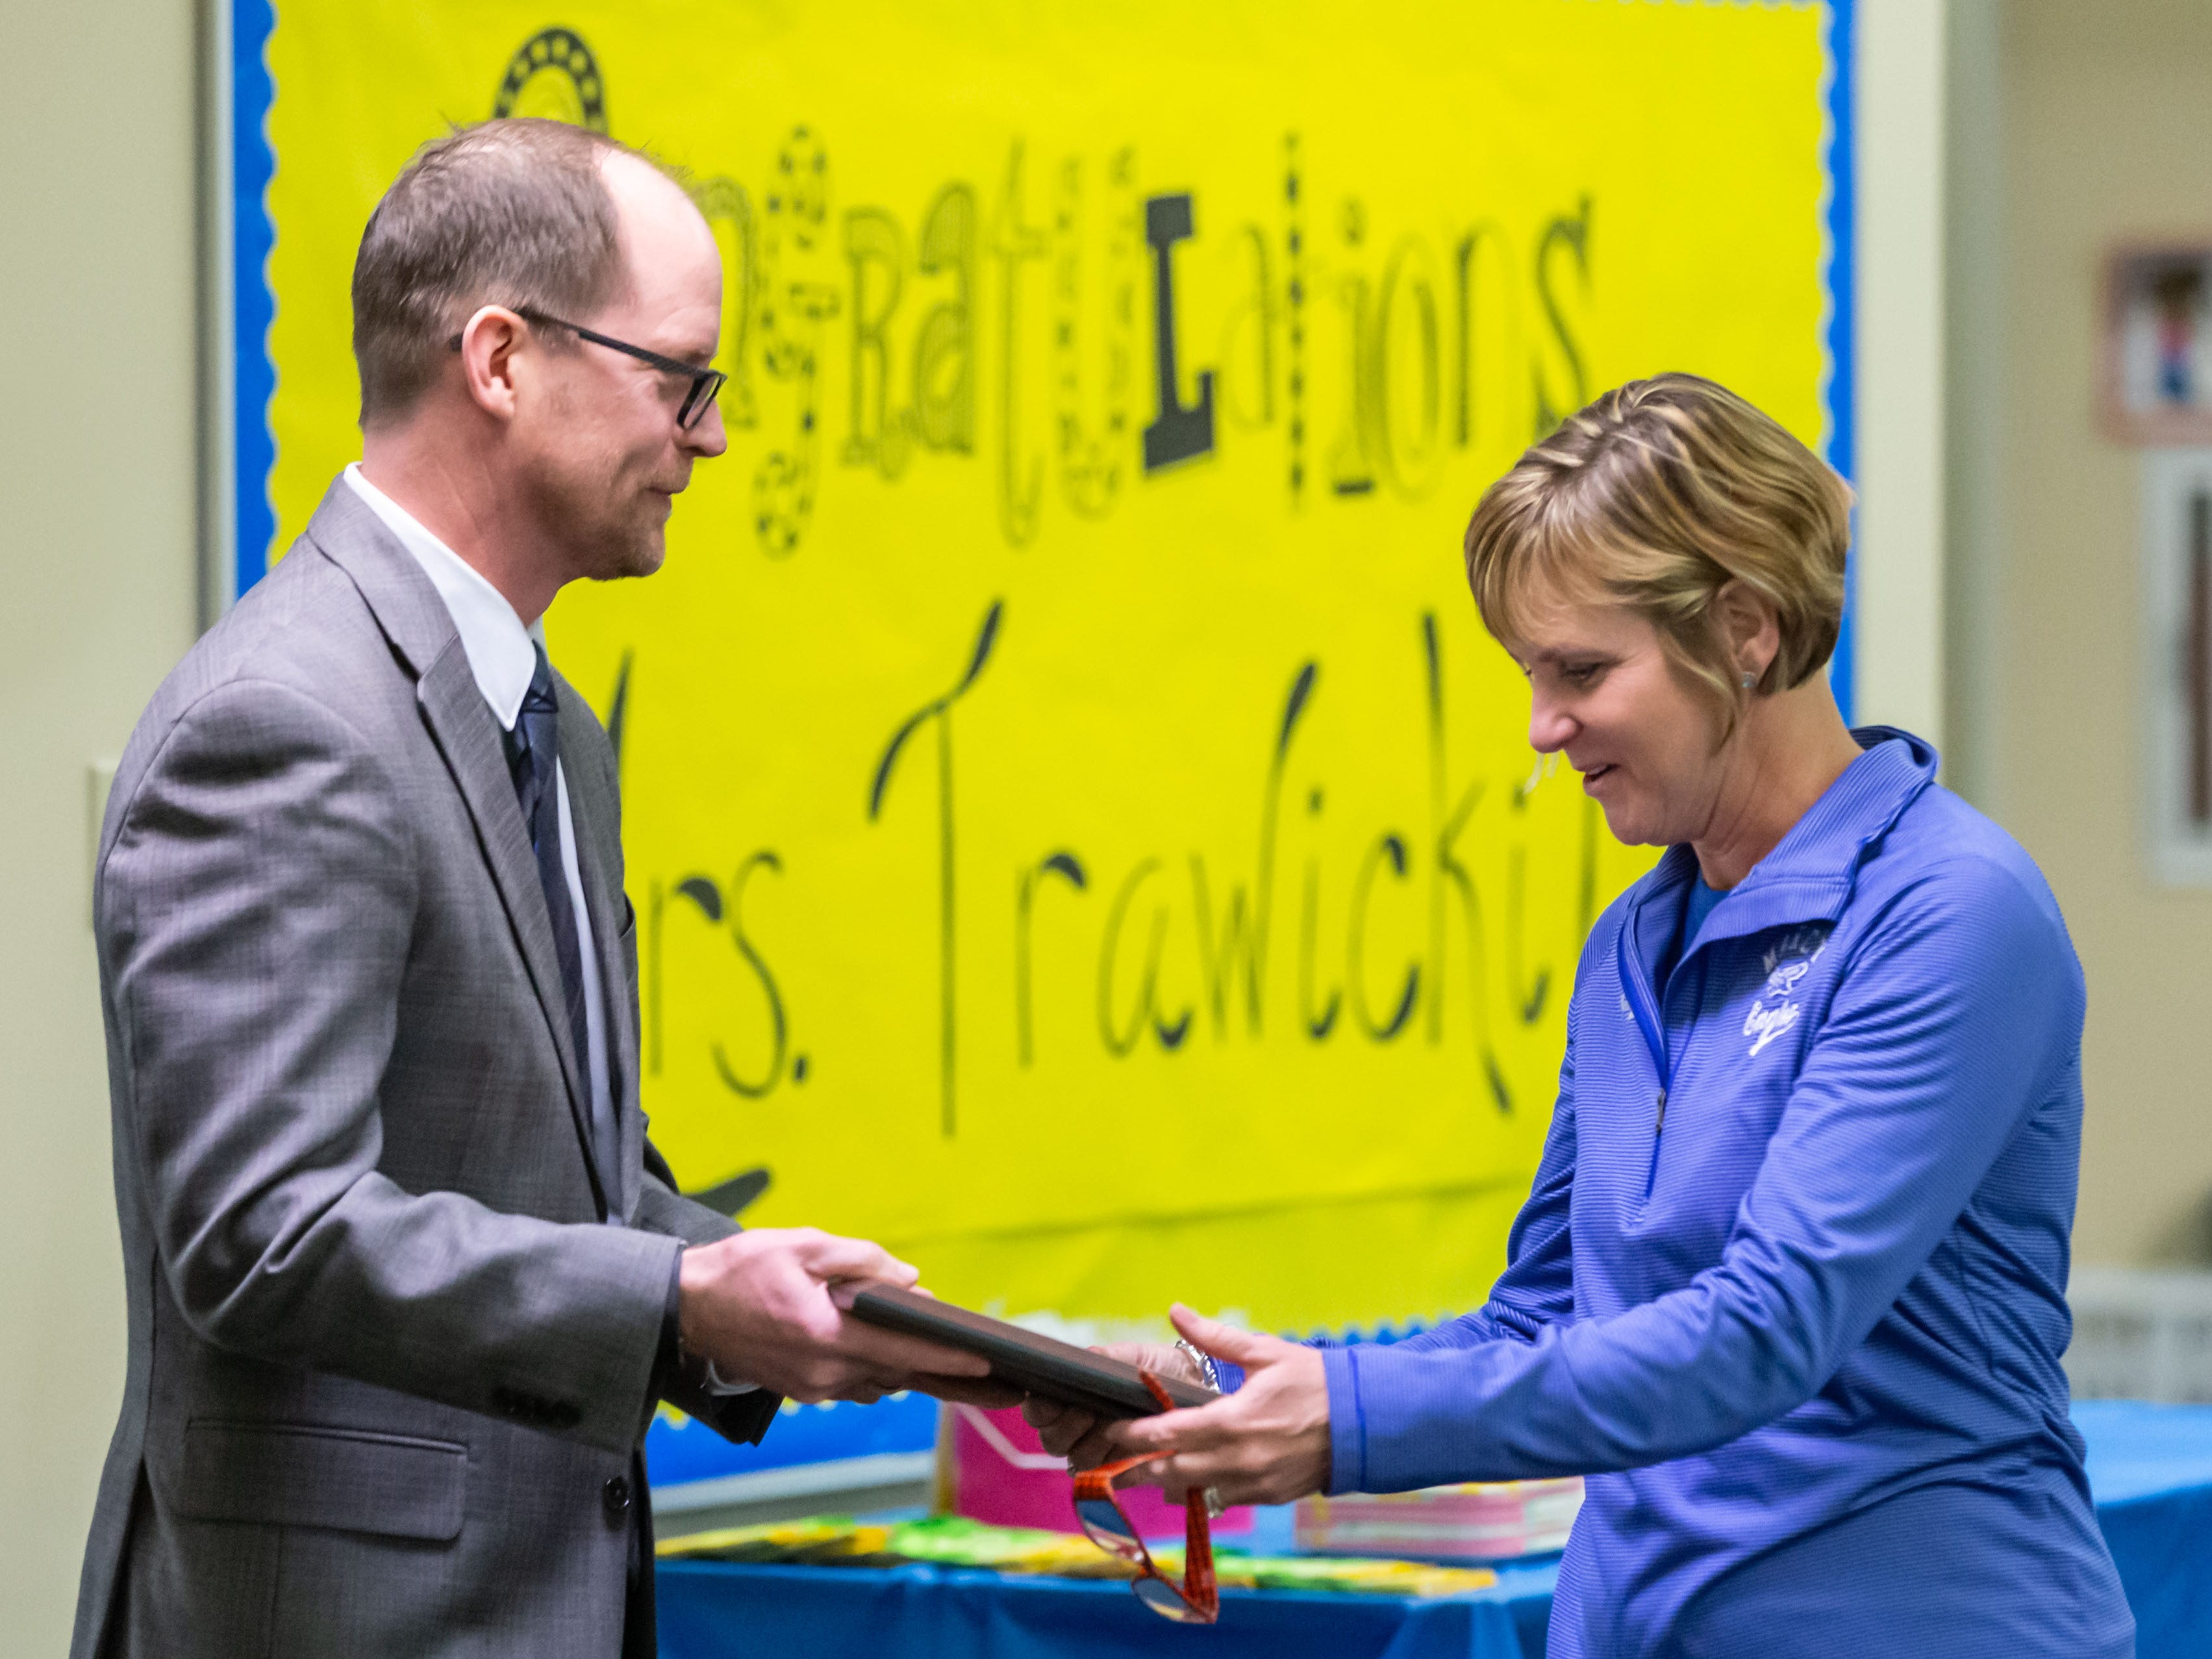 AWSA Executive Director Jim Lynch presents Marcy Elementary School Principal Michele Trawicki with a plaque after she was named the 2019 Wisconsin Elementary School Principal of the Year by the Association of Wisconsin School Administrators (AWSA) on Friday, April 5, 2019.